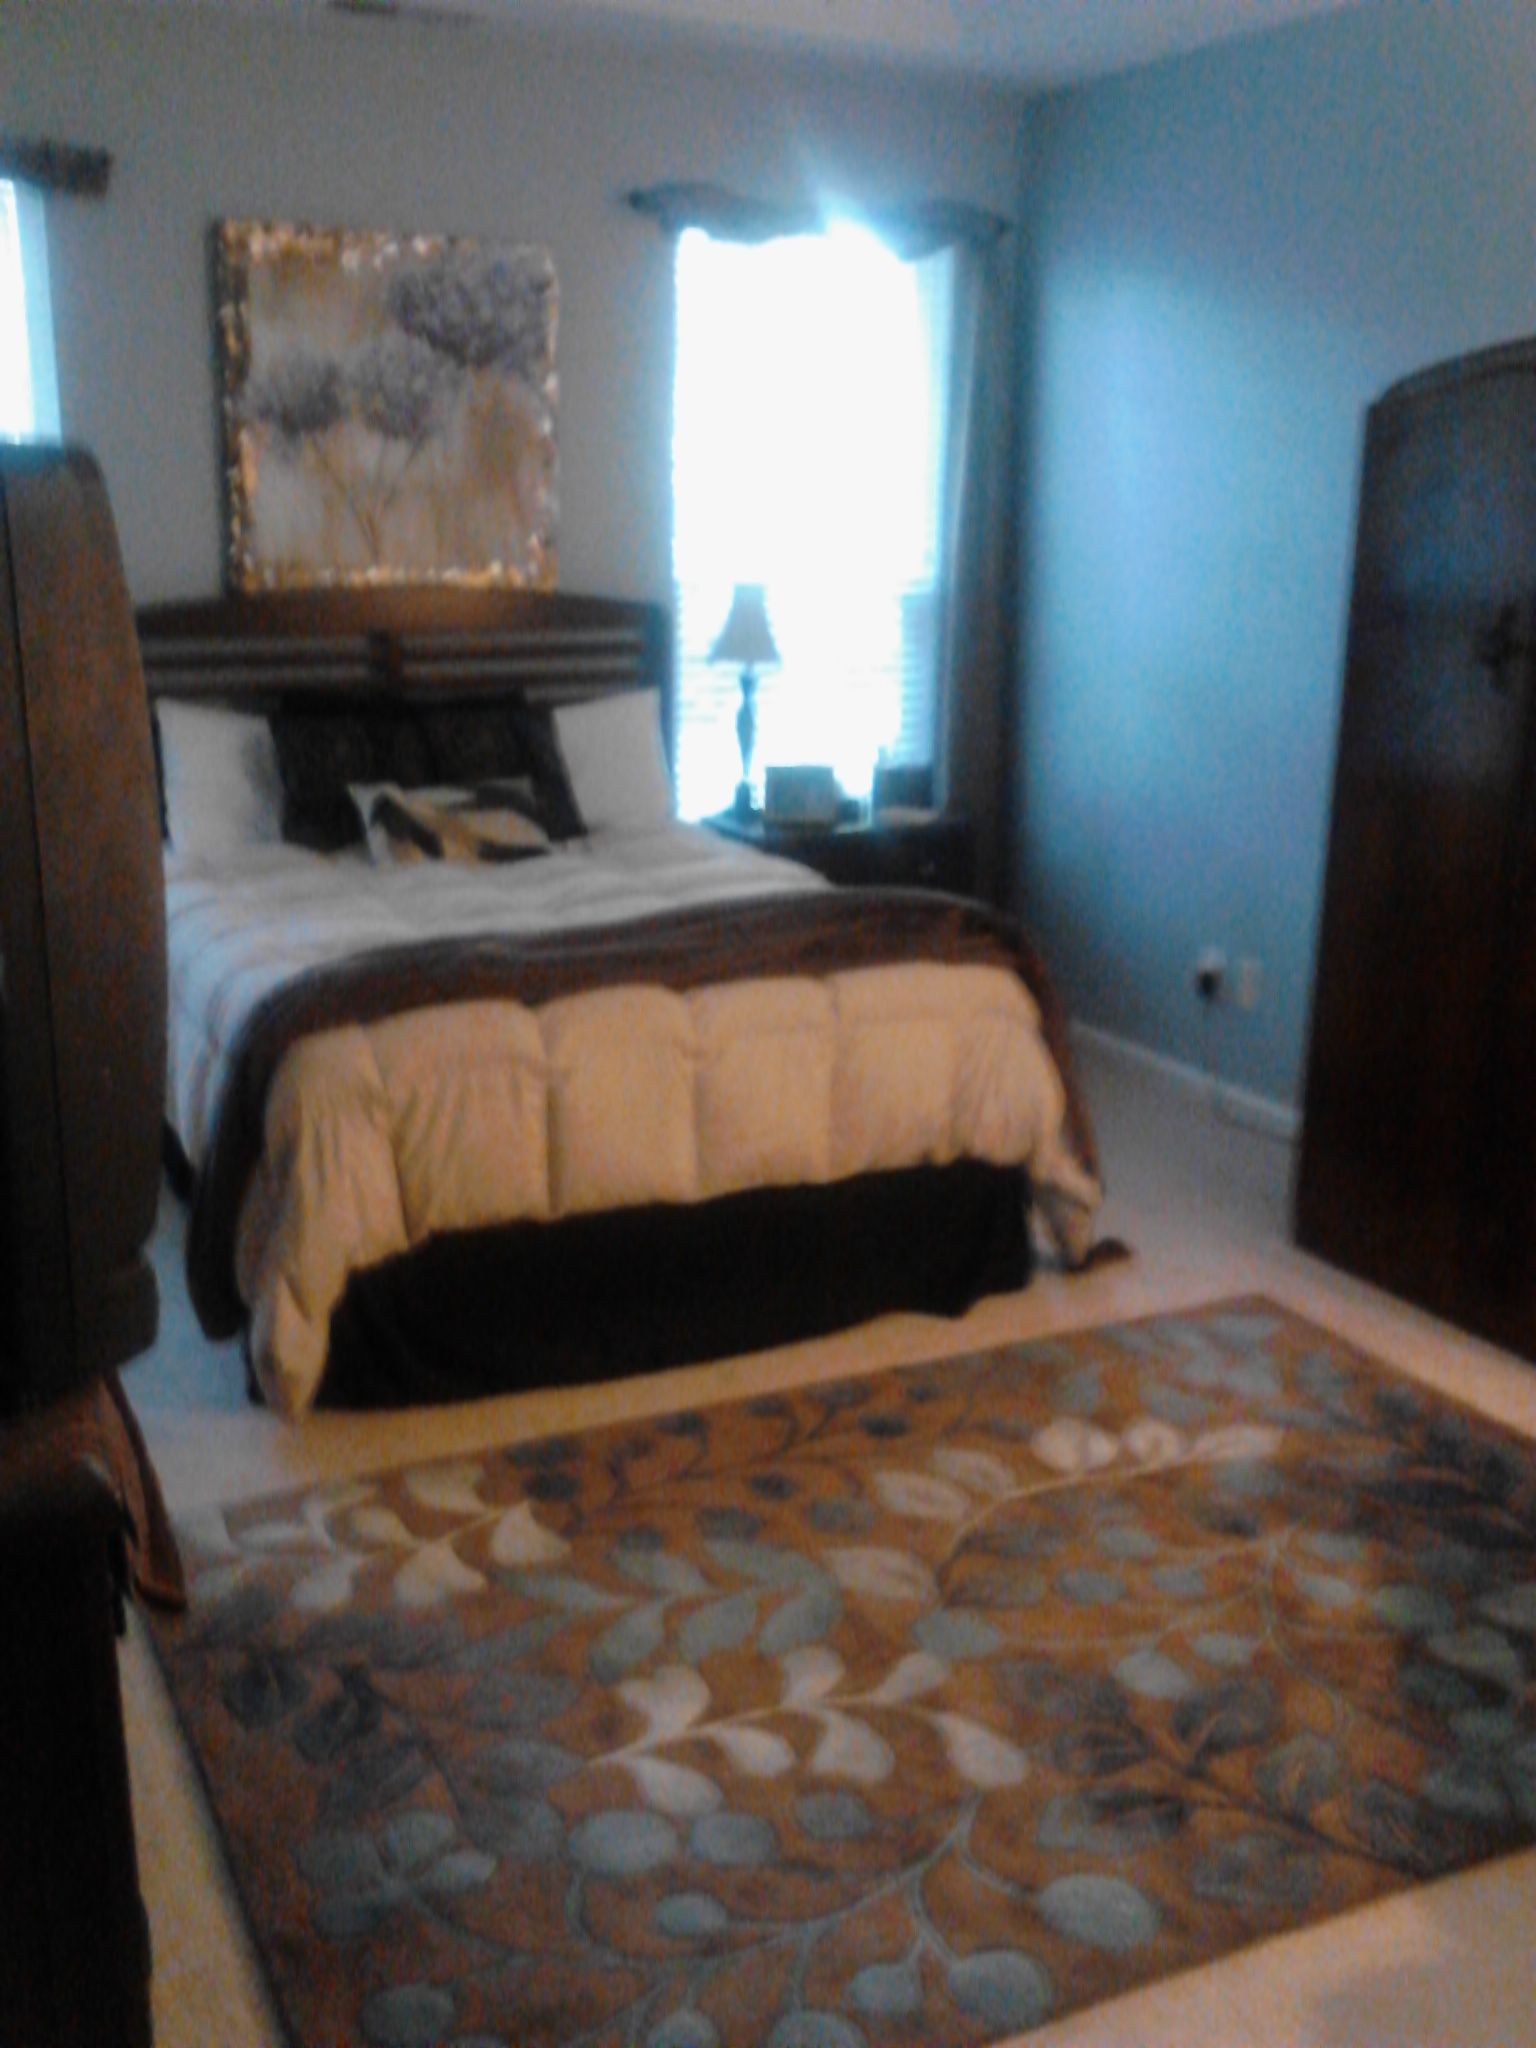 my bedroom, with one of our beautiful area rugs...brings it all together